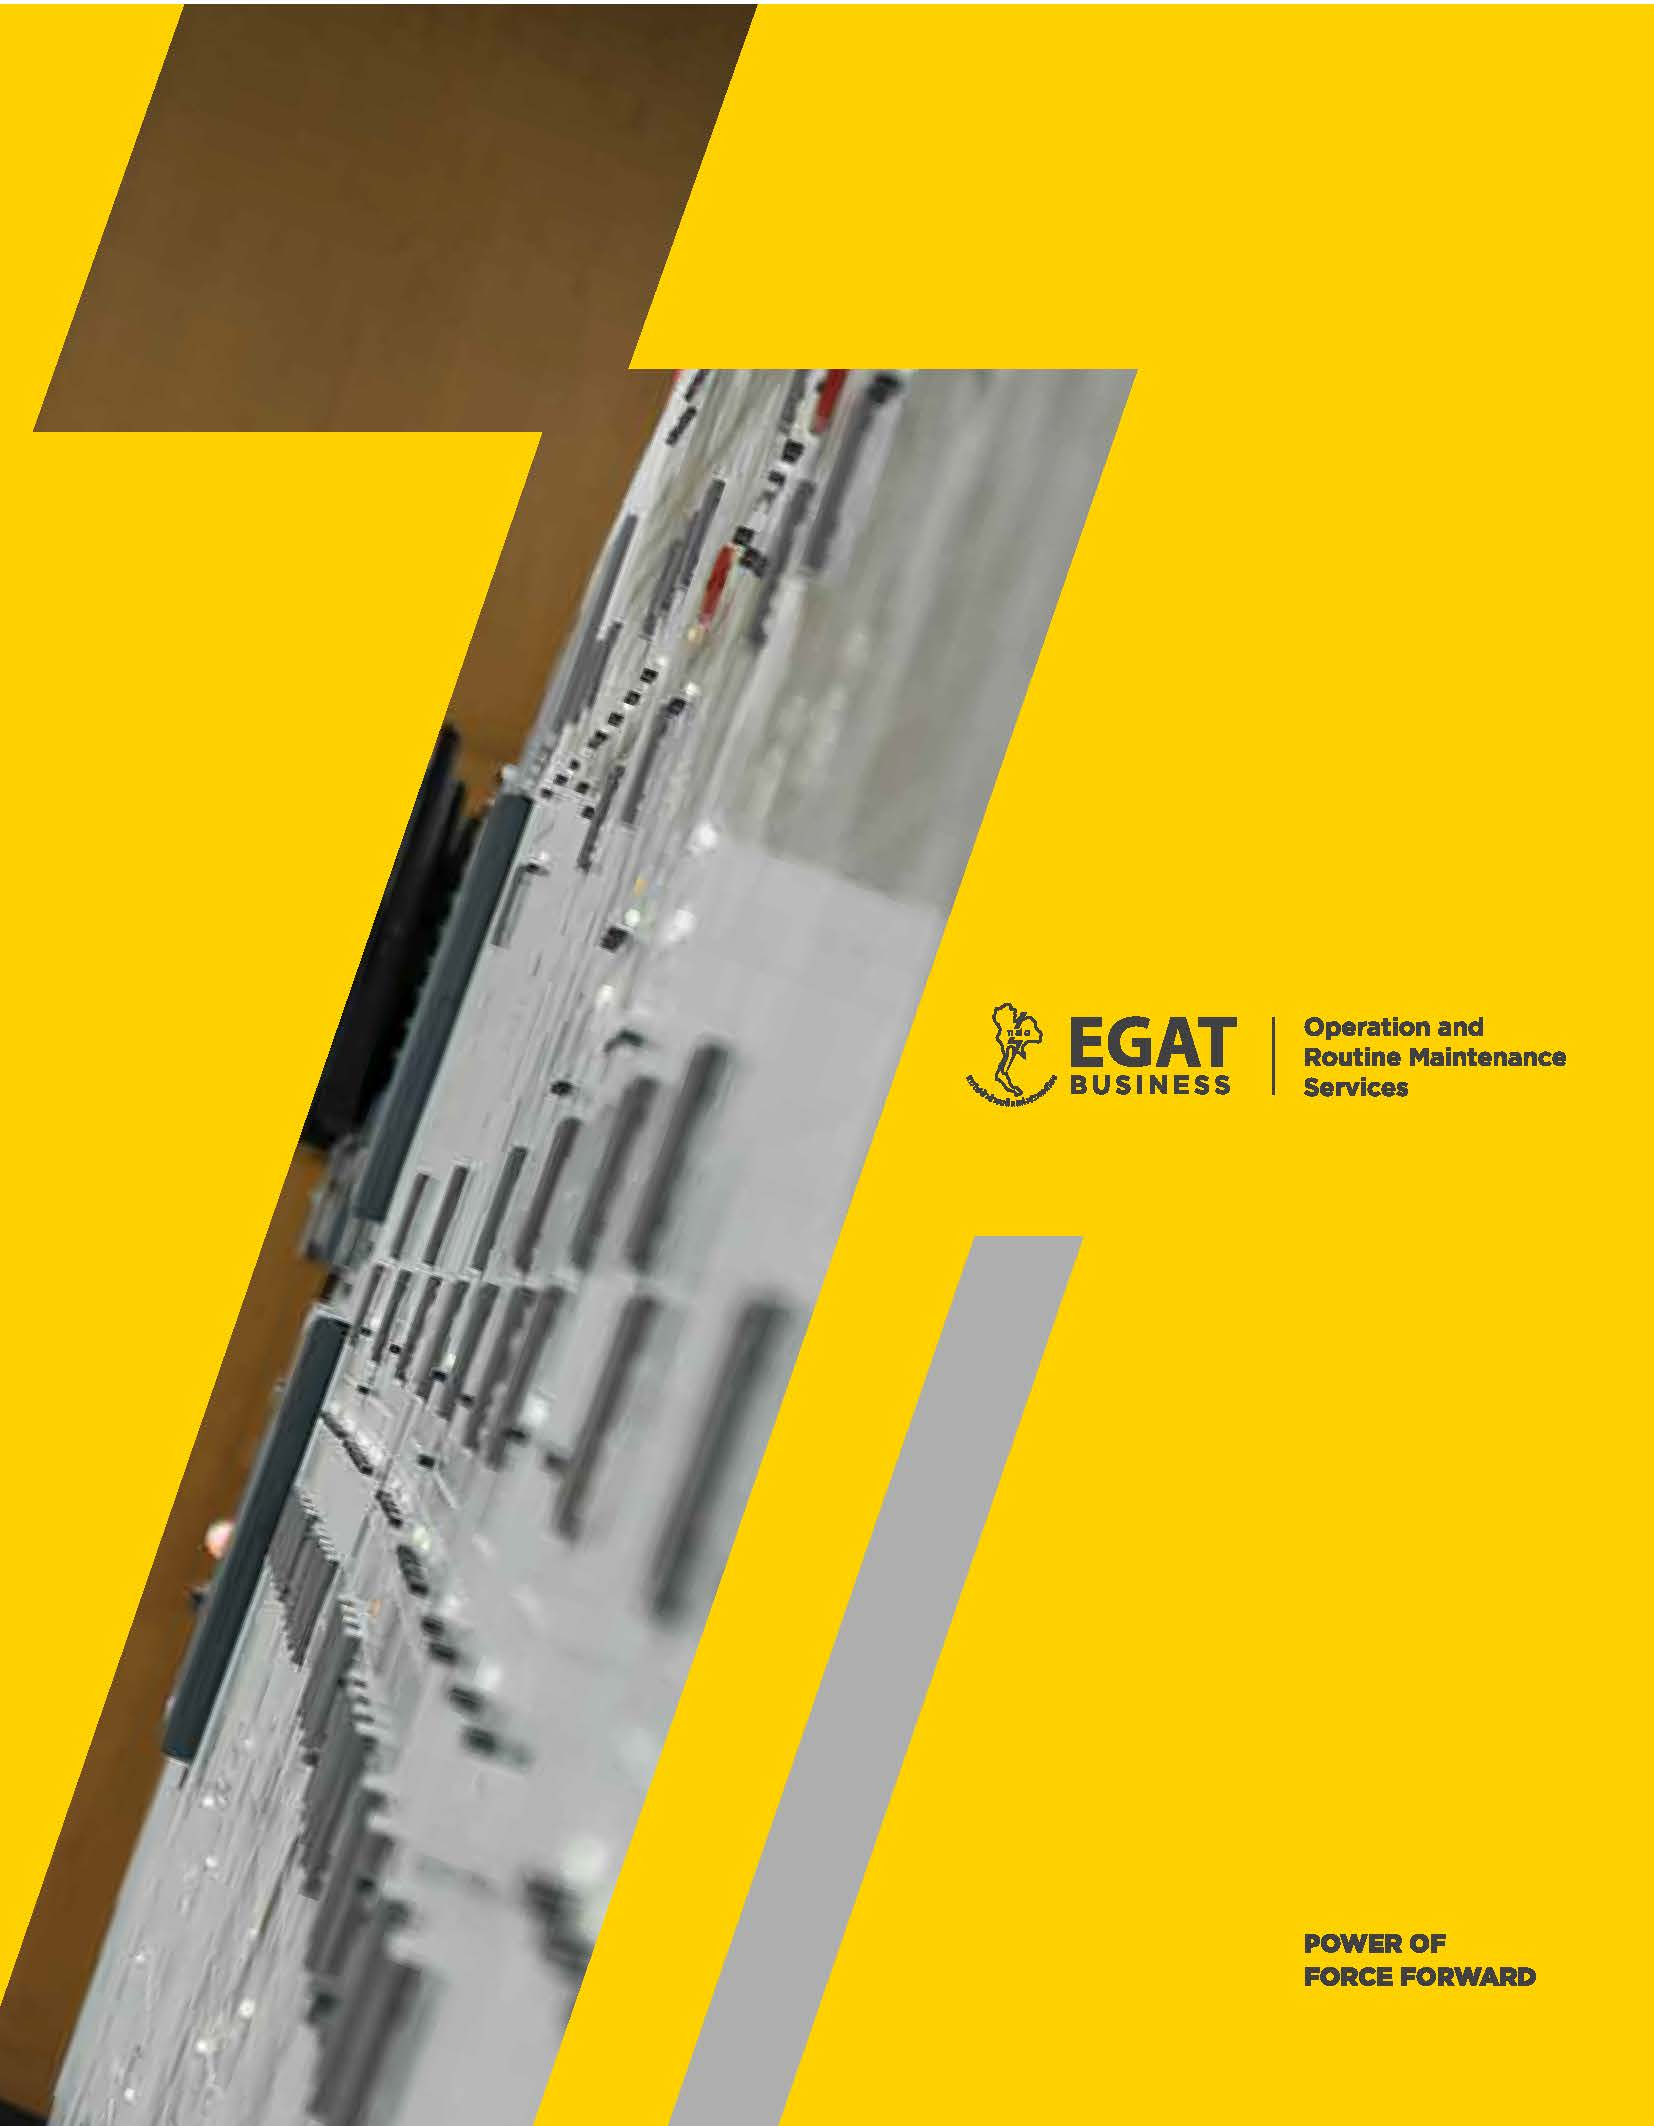 EGAT Operation and Routine Maintenance Services